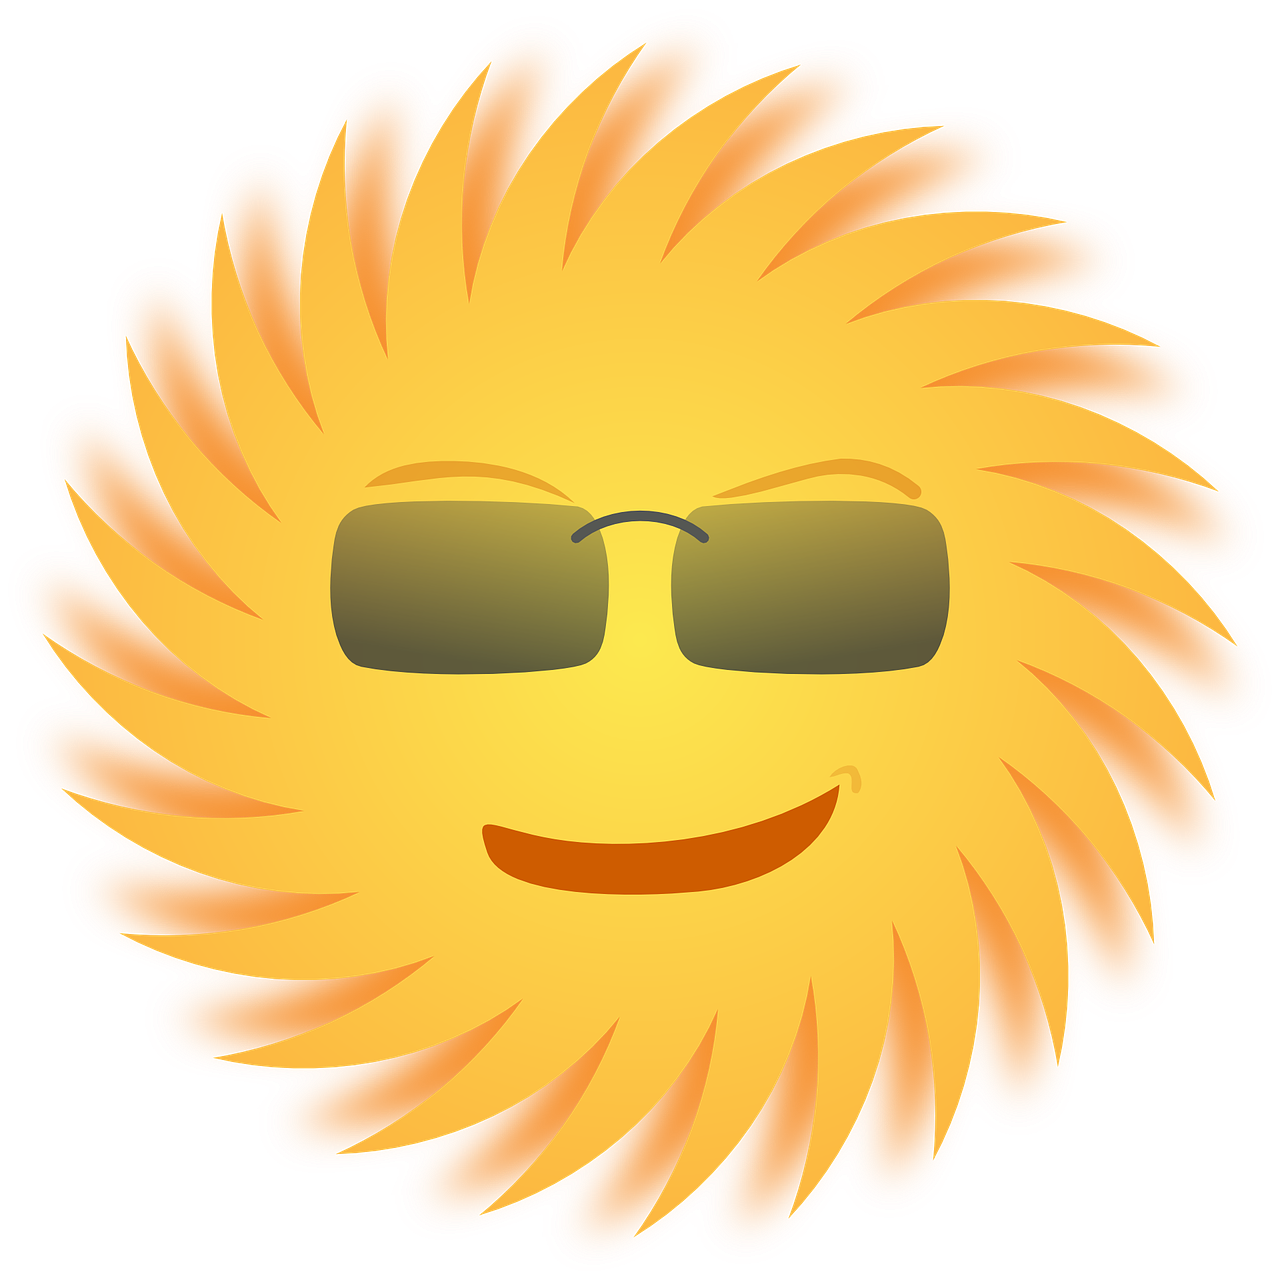 sun sunglasses smiling free photo